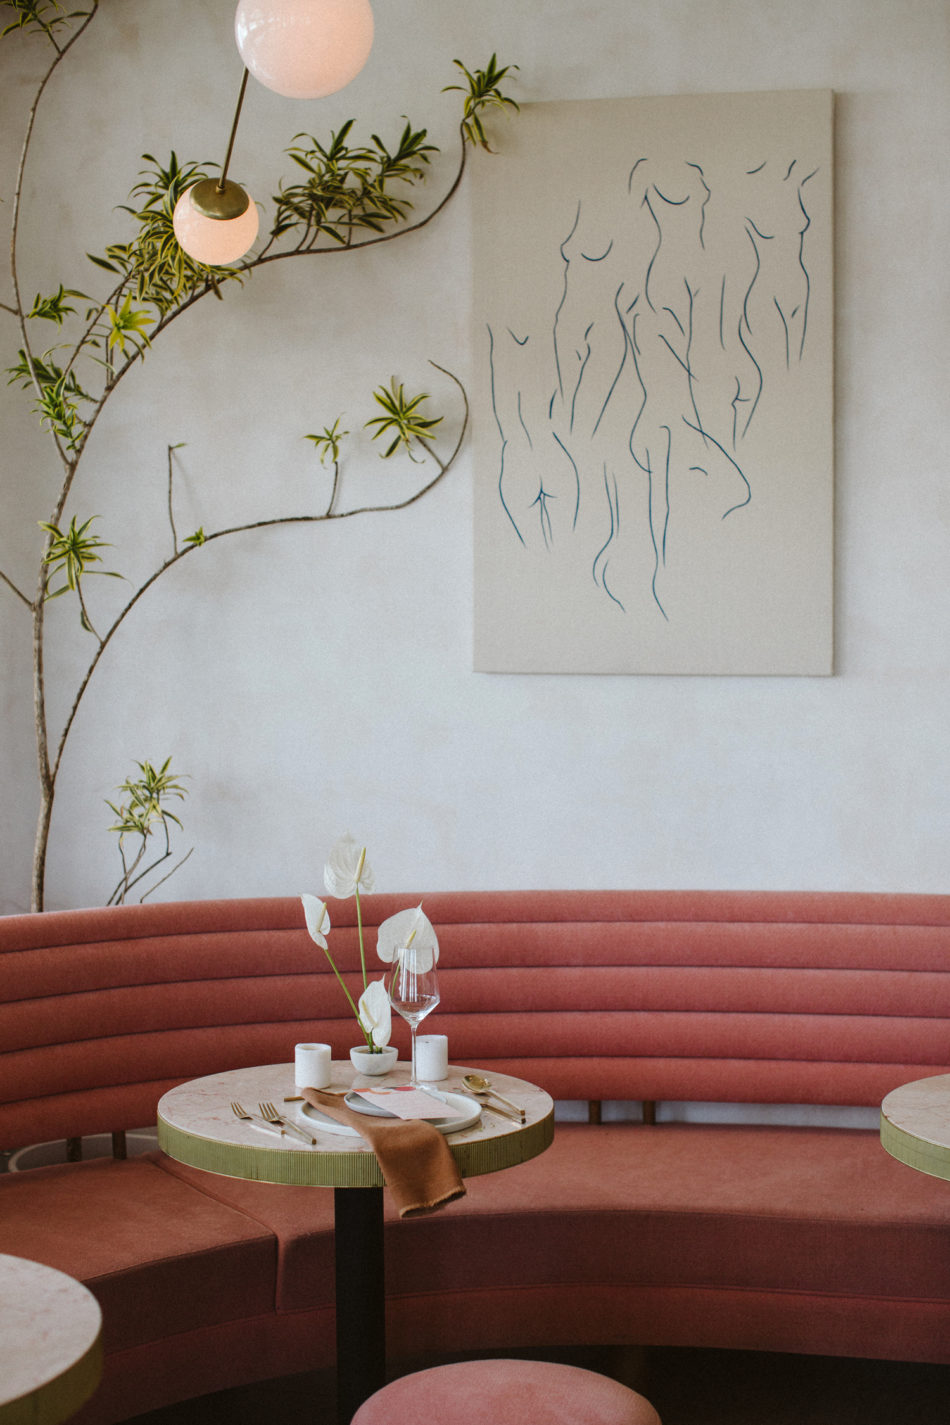 Photoshoot inspiration mariage moderne et simple,chic restaurant in california